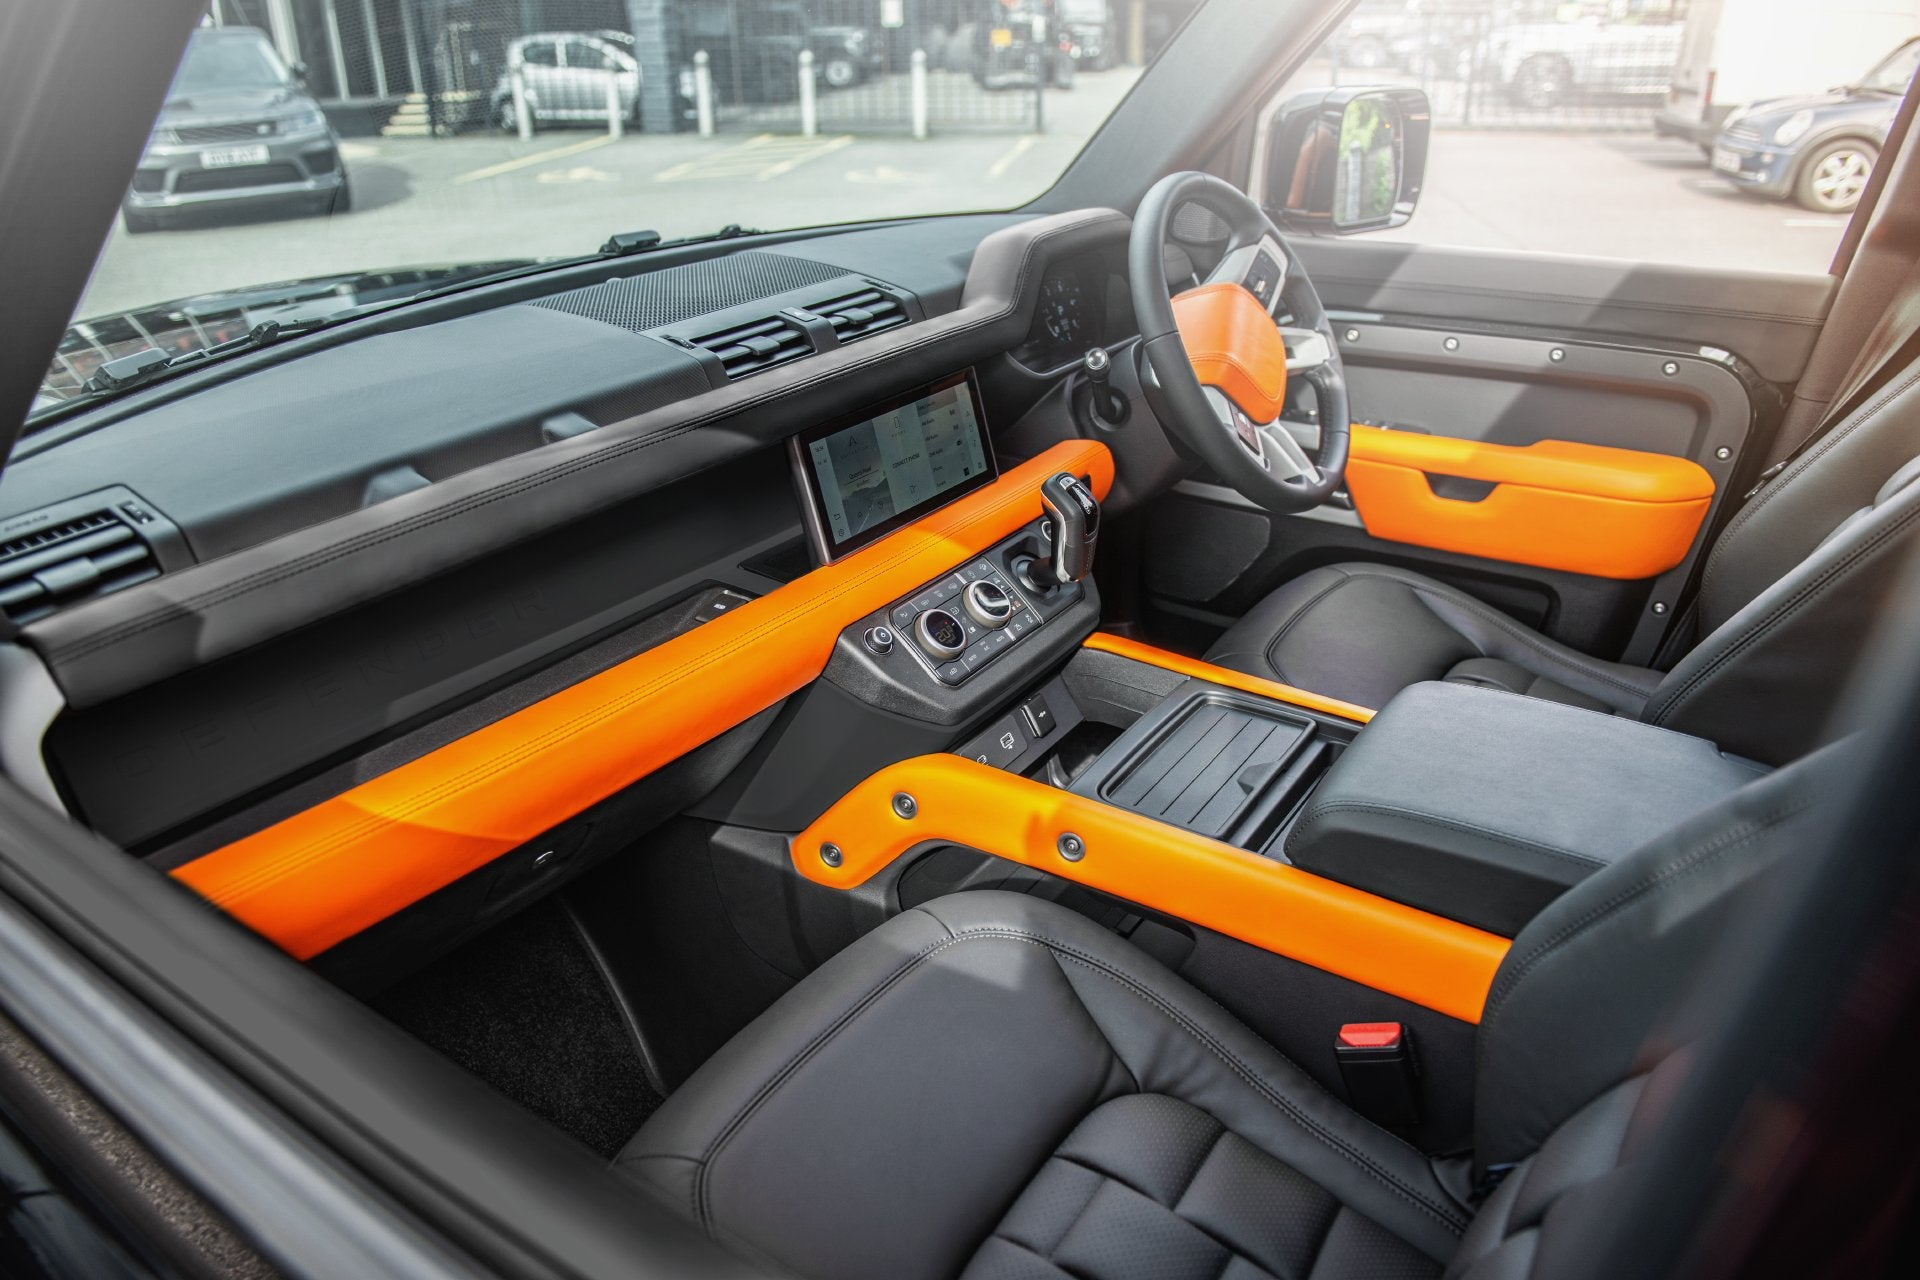 Land Rover Defender 110 (2020-Present) Environment 3: Middle and Lower Interior - Project Kahn